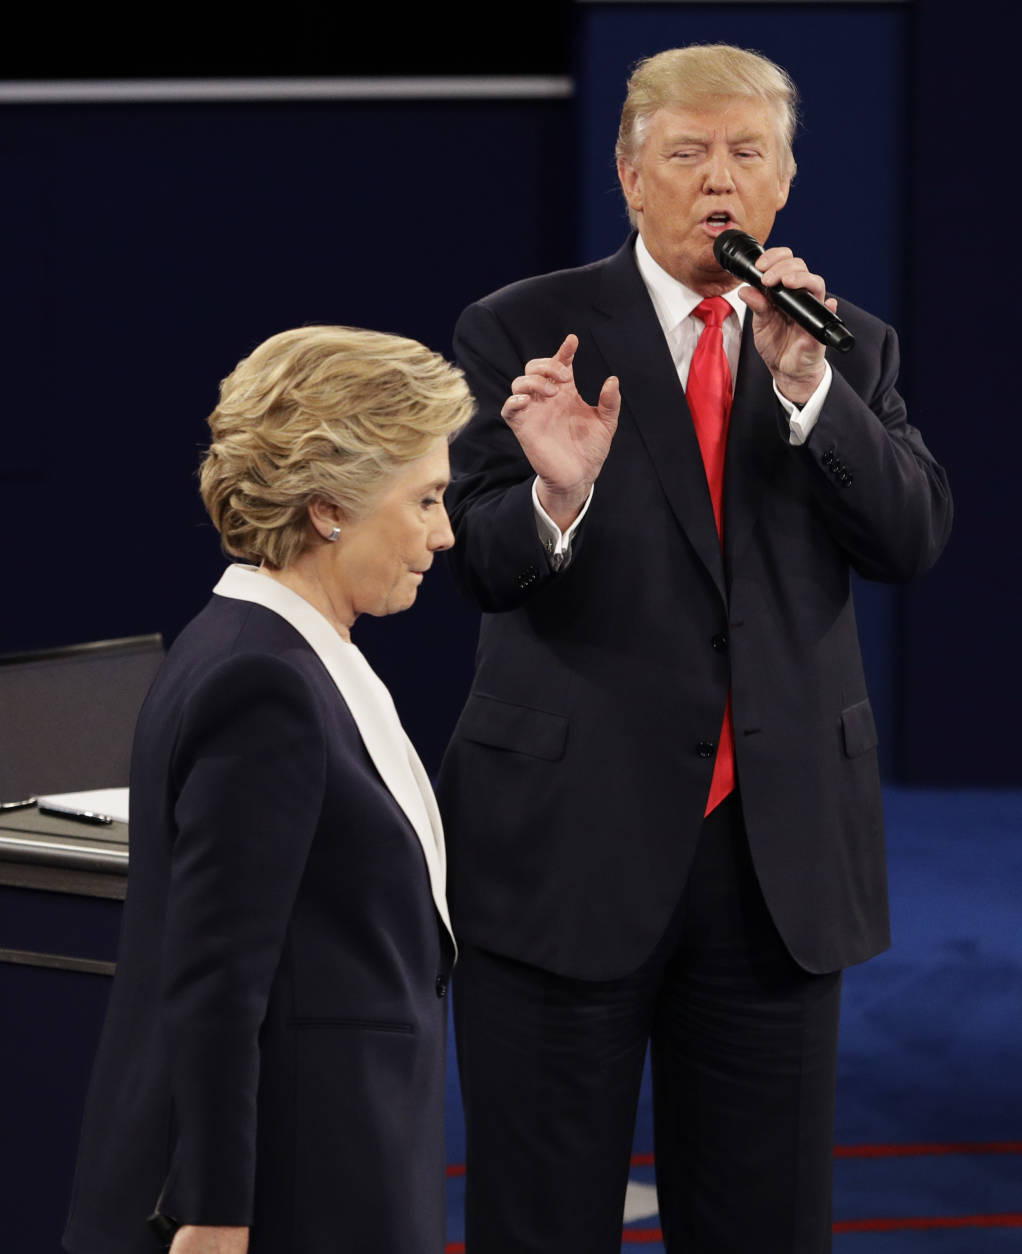 FILE - In this Sunday, Oct. 9, 2016 file photo, Democratic presidential nominee Hillary Clinton walks past Republican presidential nominee Donald Trump during the second presidential debate at Washington University in St. Louis. (AP Photo/John Locher)